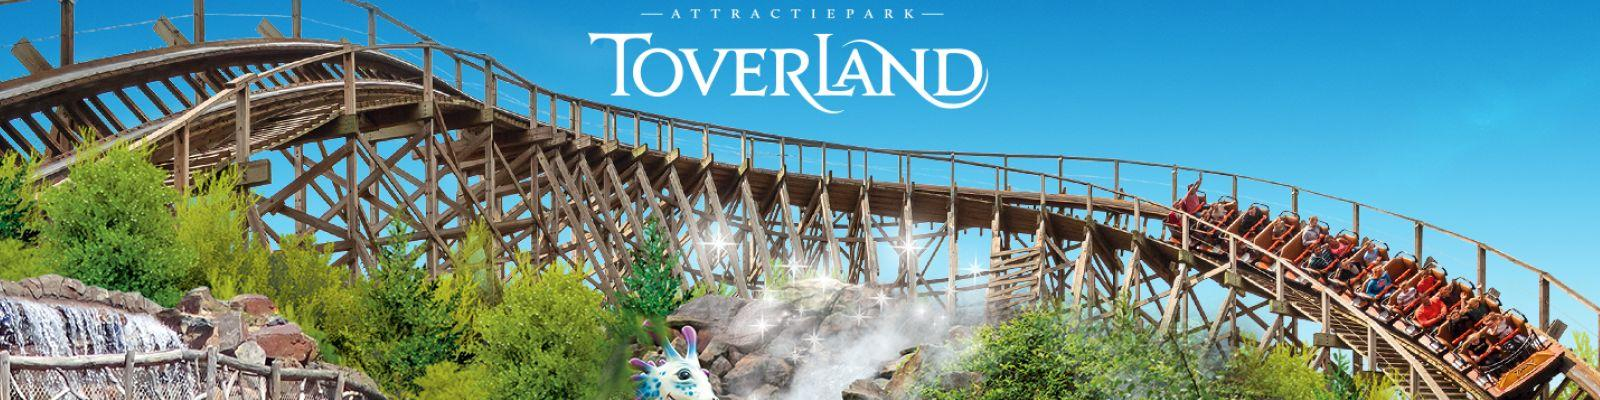 Parc attraction Toverland